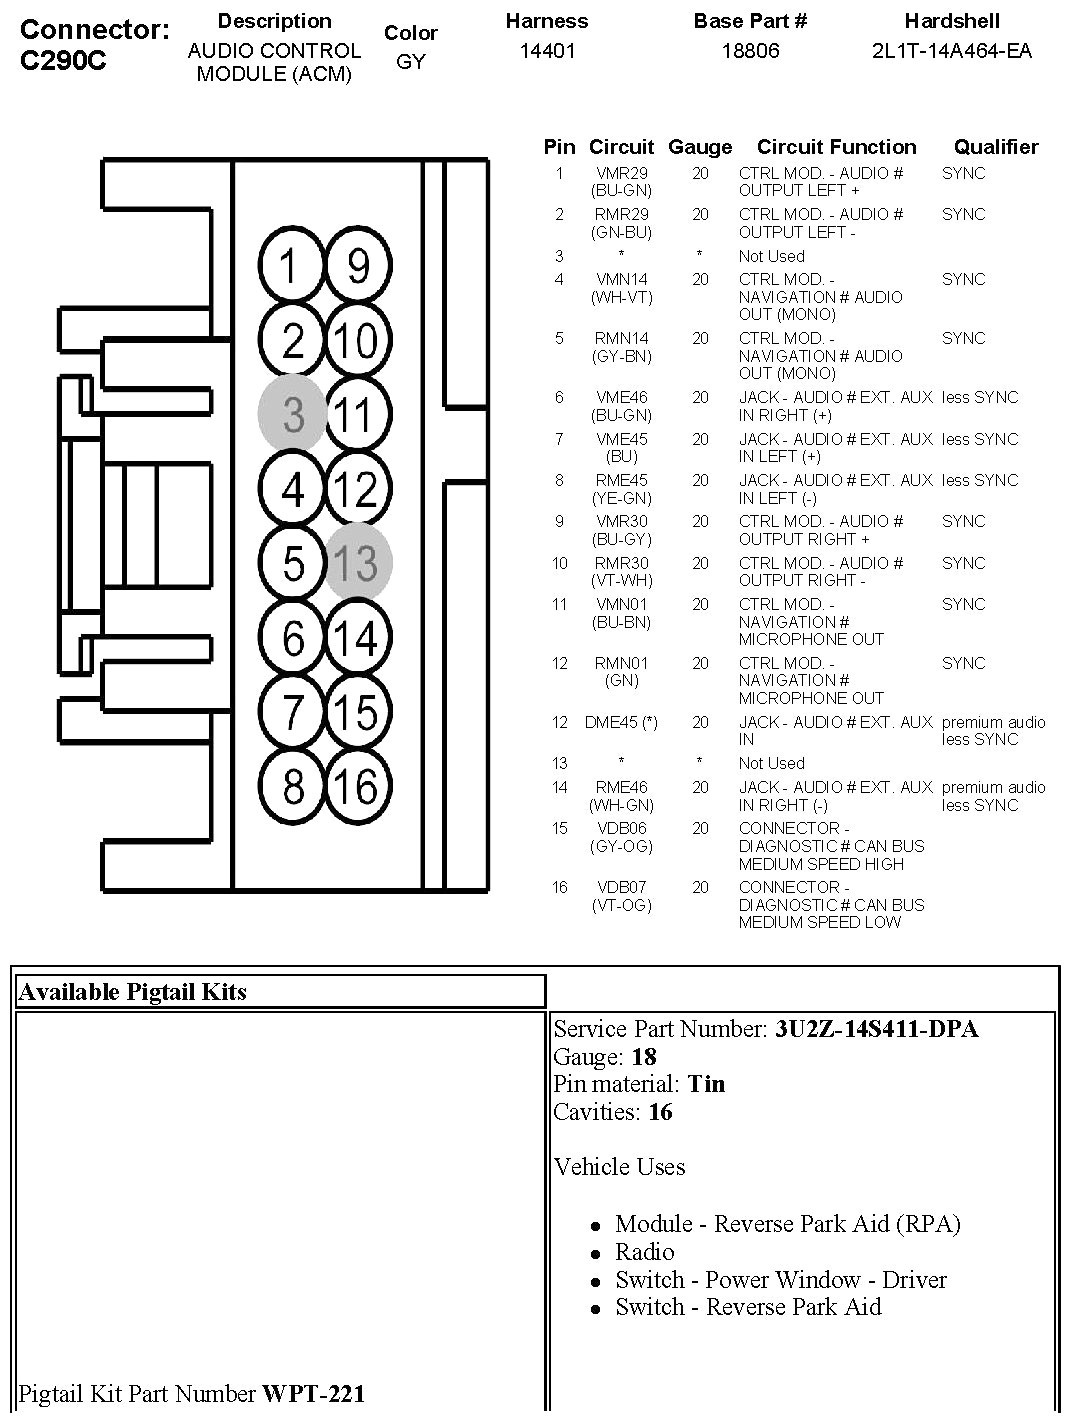 Kenwood Excelon Ddx7015 Wiring Diagram from static-resources.imageservice.cloud